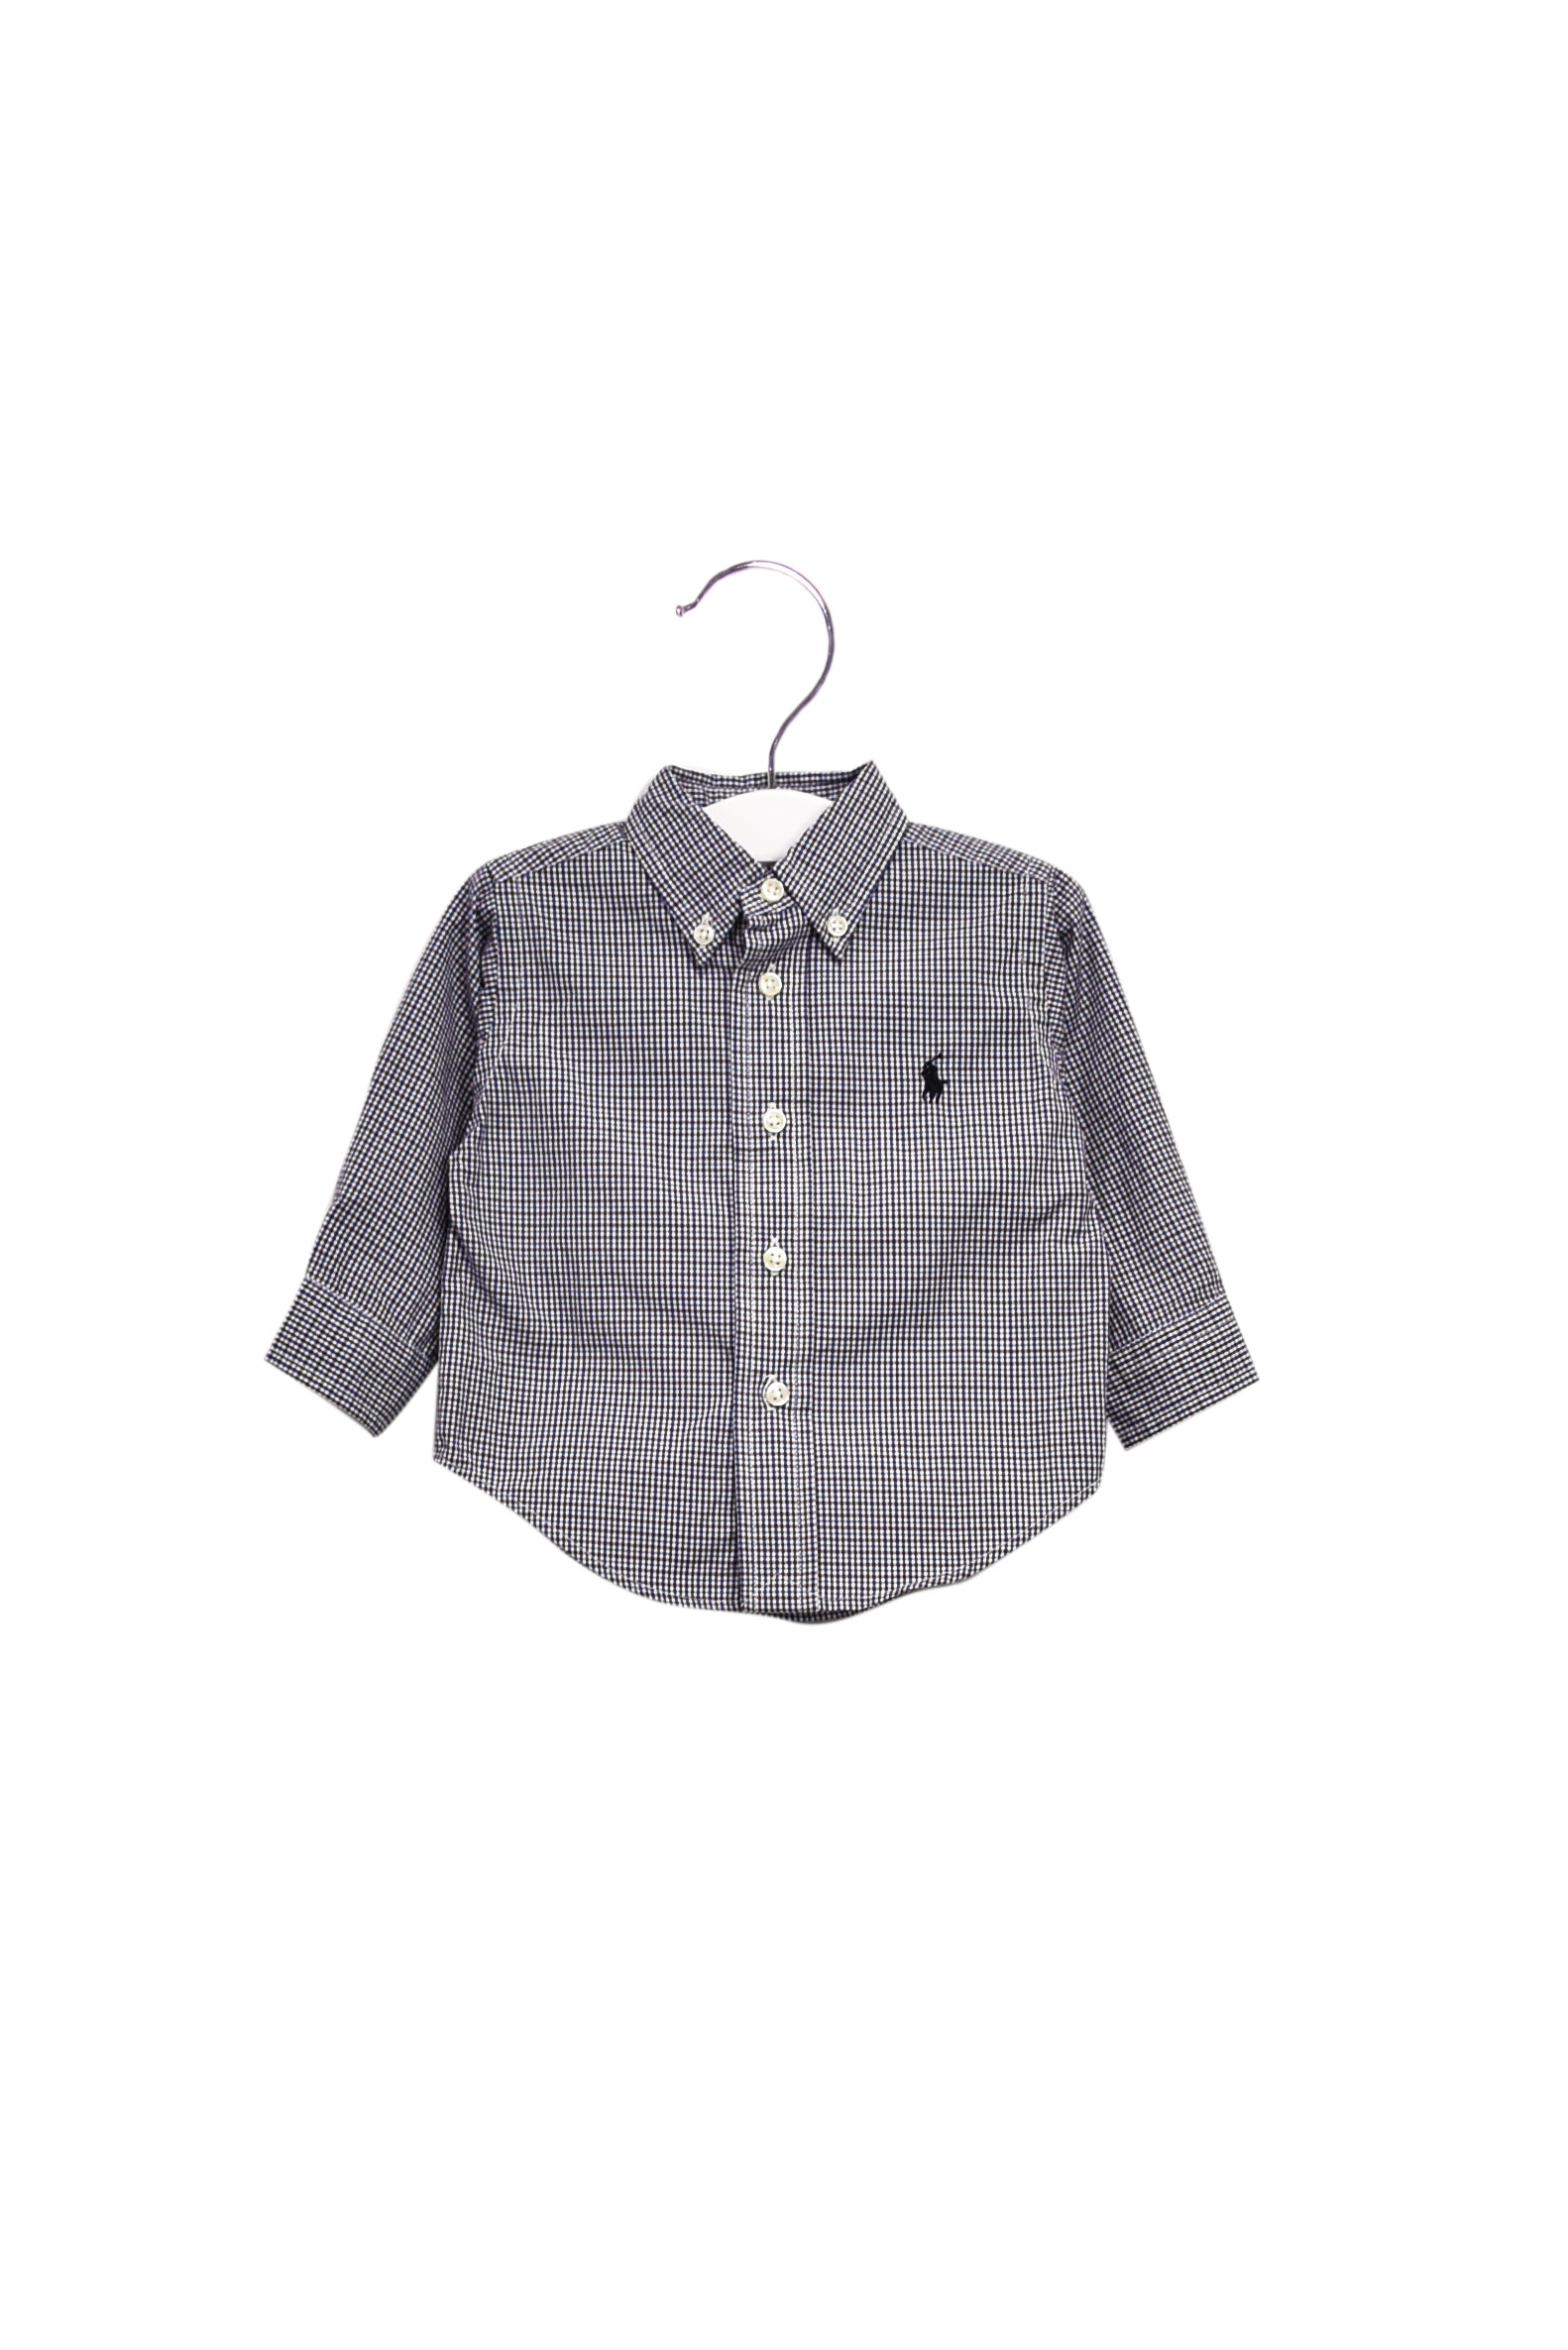 10021603 Ralph Lauren Baby~Shirt 9M at Retykle